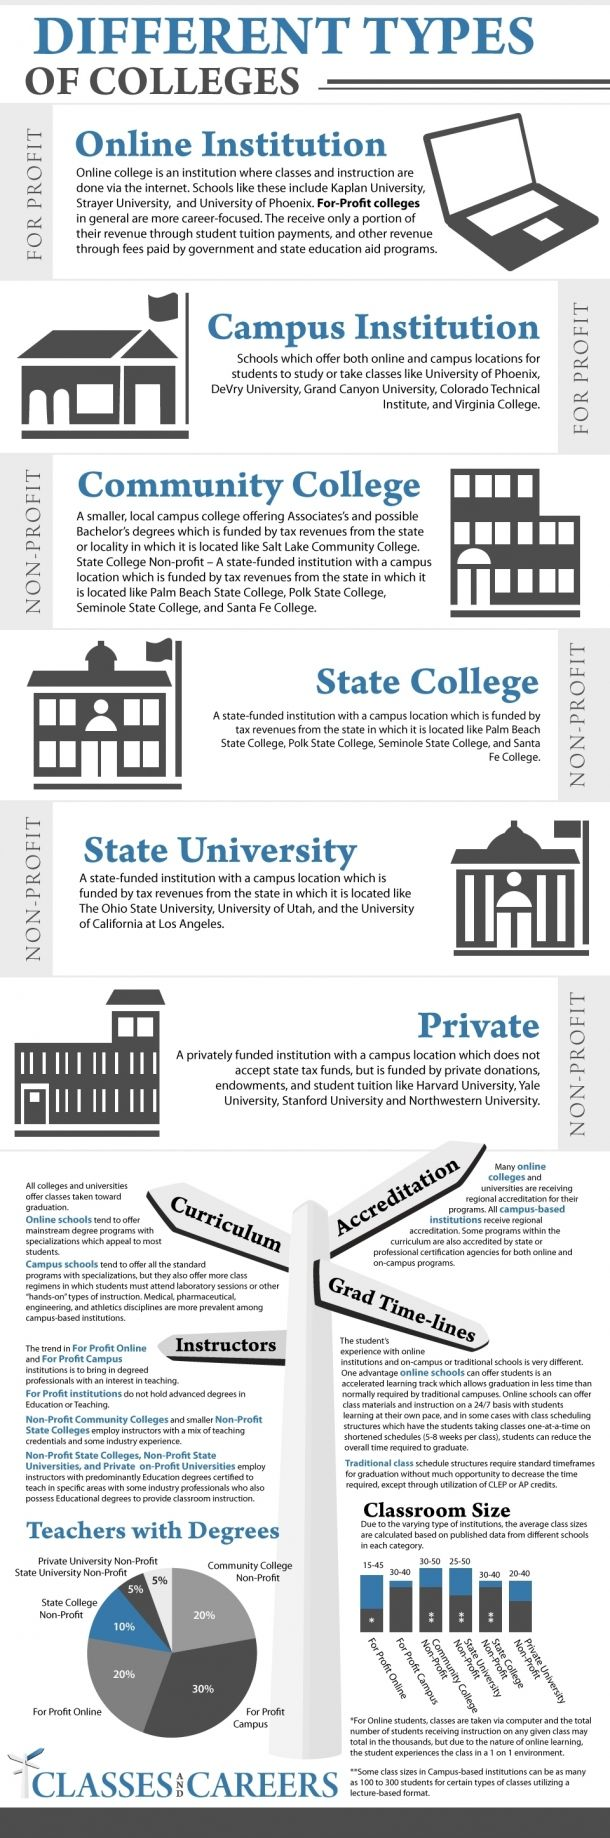 It's never too early to start thinking about where you may want to go. A great breakdown of different types of colleges